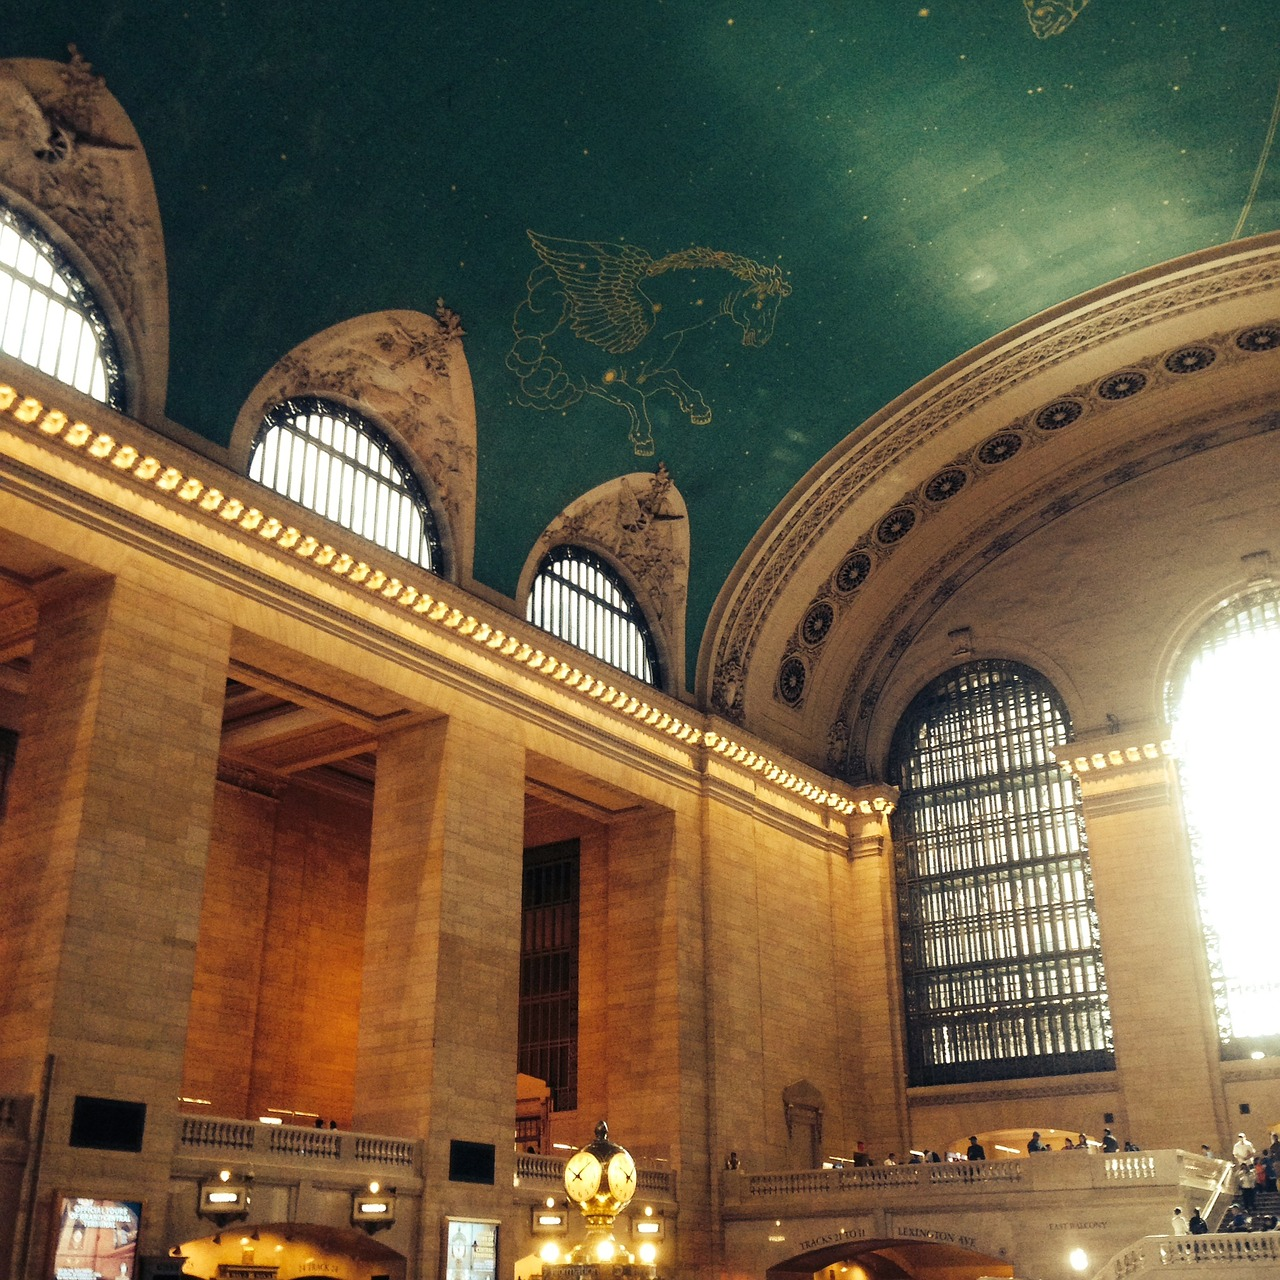 grand-central-station-649882_1280